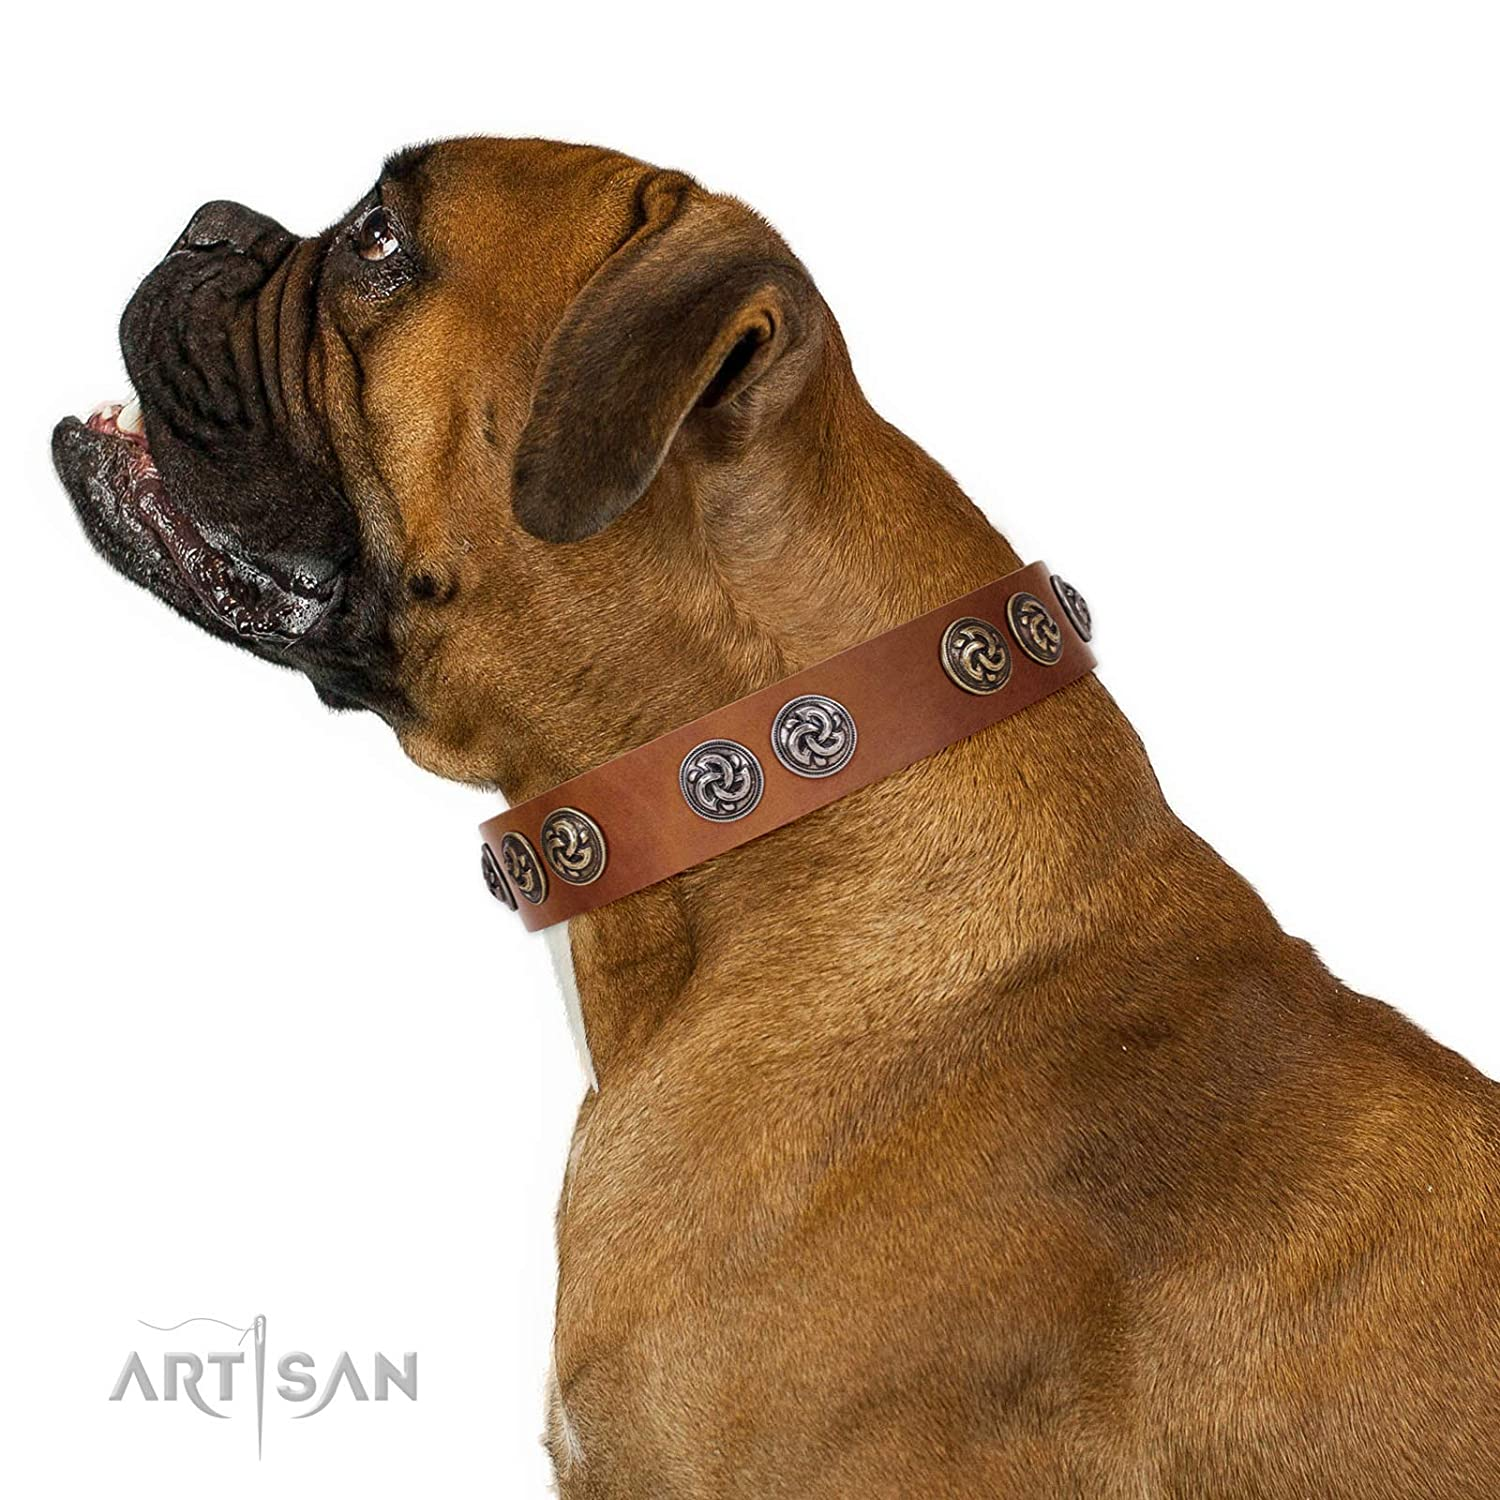 Fits for 27 inch (68cm) dog's neck size FDT Artisan 27 inch Luxurious Life Designer Tan Leather Dog Collar with Silvery and gold-Like Medallions 1 1 2 inch (40 mm) Wide Gift Box Included